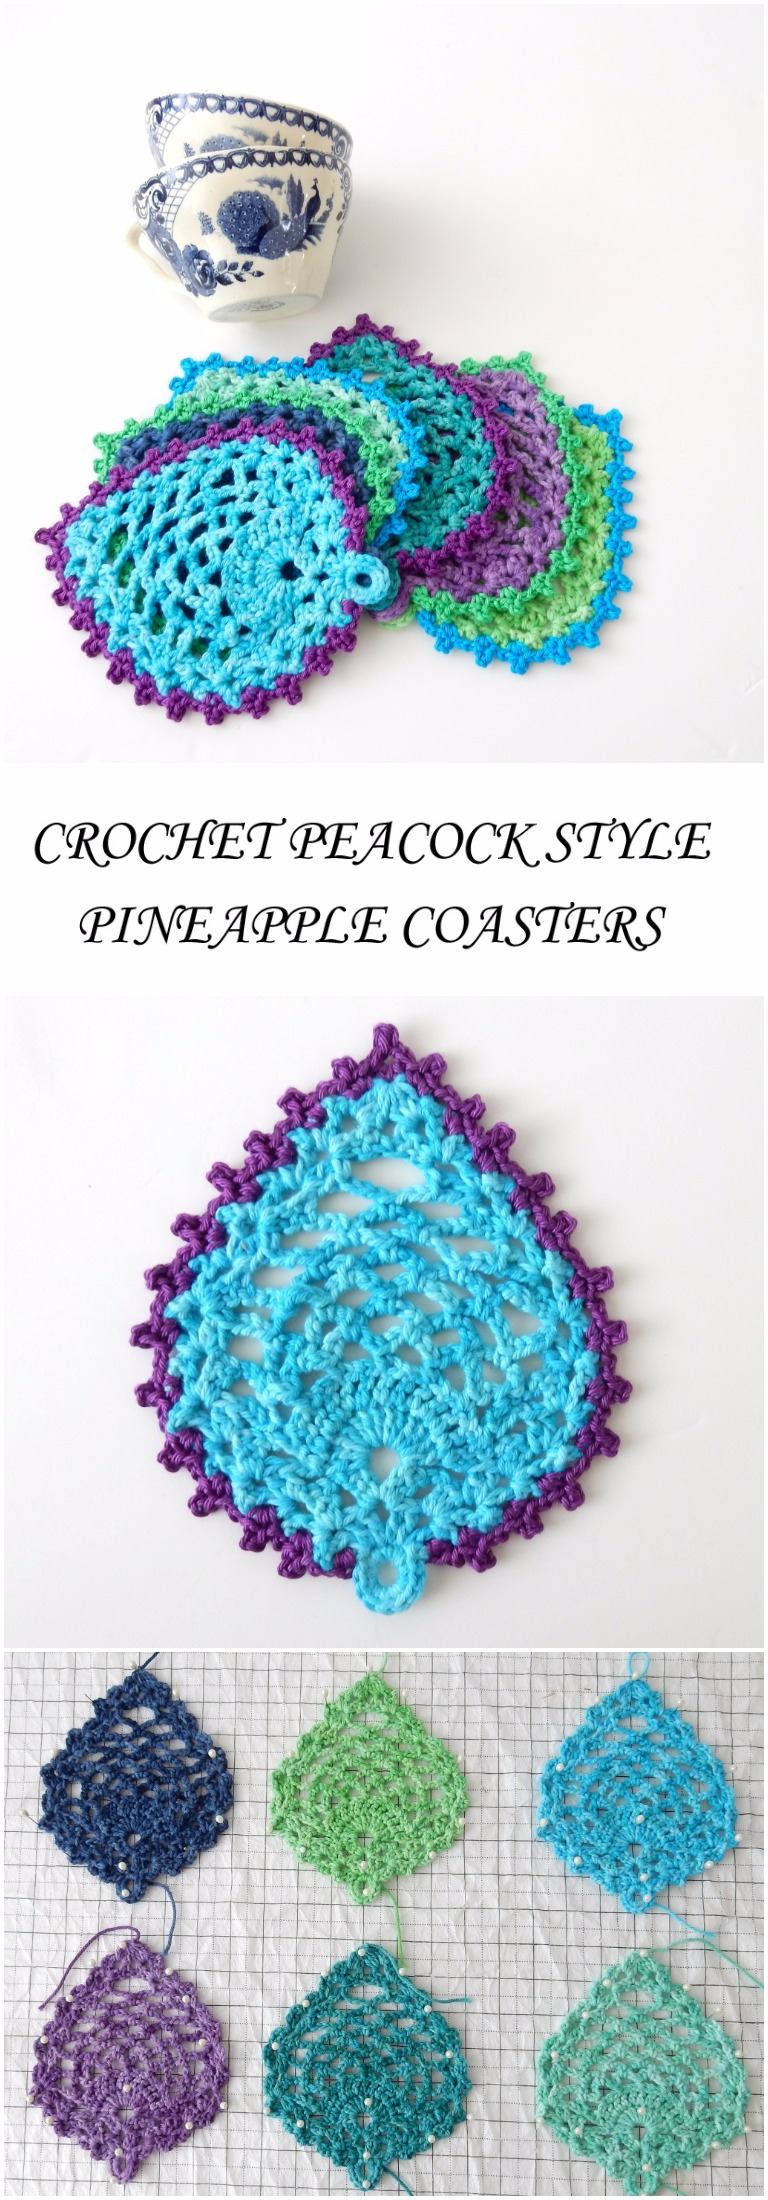 Crochet Peacock Style Pineapple Coasters Free Pattern